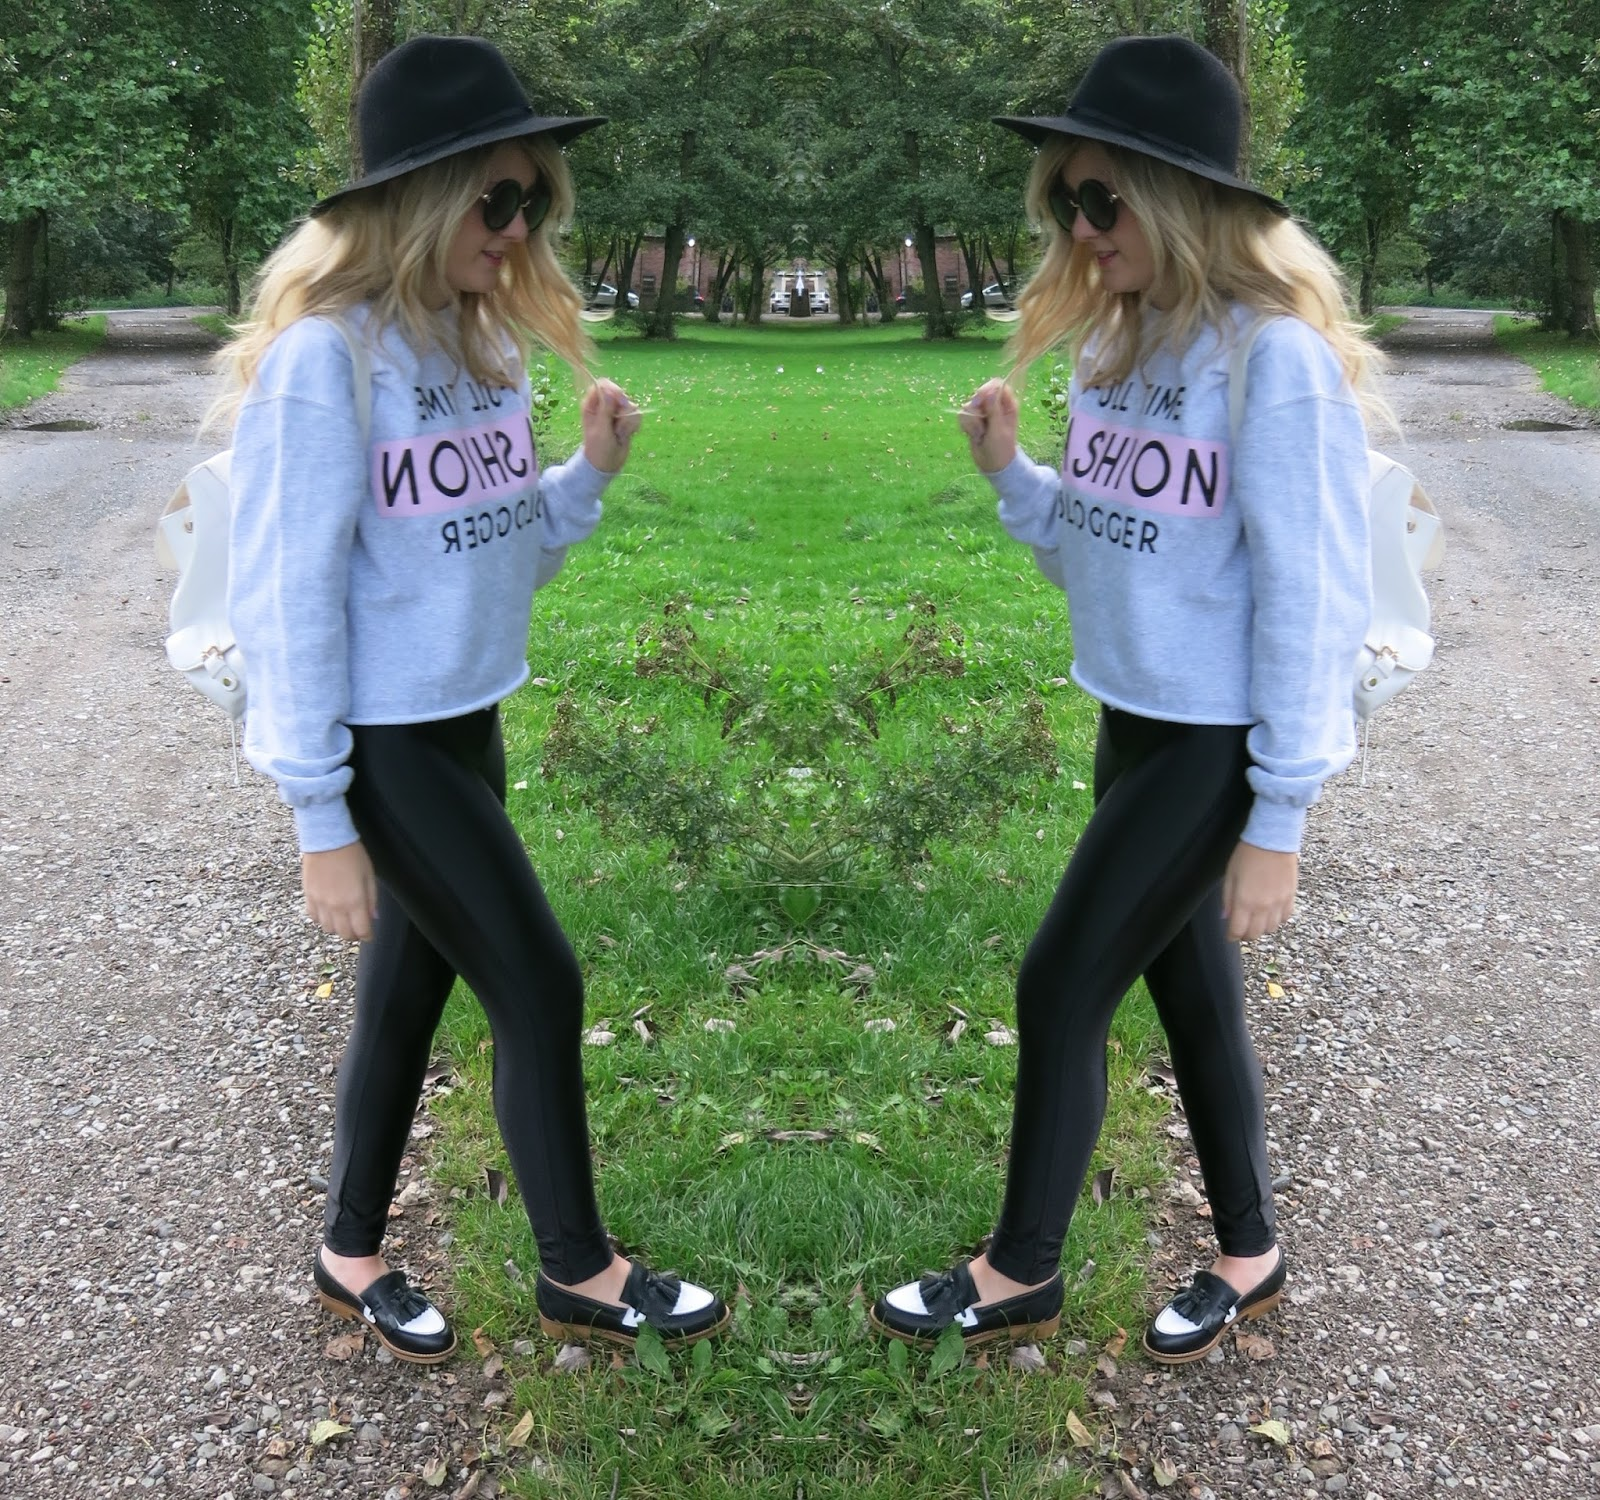 river island fashion blogger jumper, full time fashion blogger jumper, fashion blogger, through chelsea's eyes, river island,